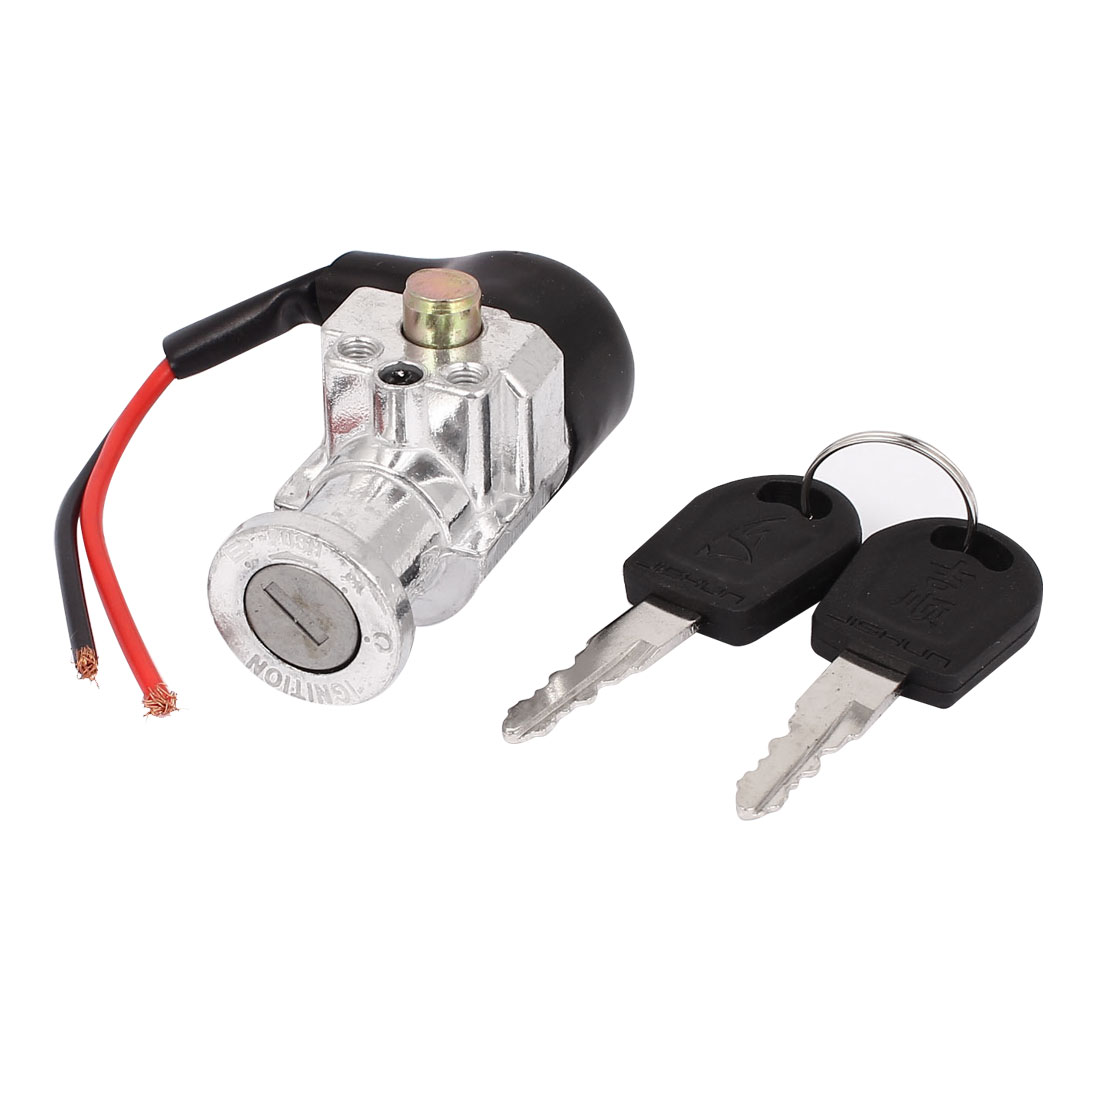 DC 48V Wired Connector Auto Motorbike Lock-On-Off Ignition Switch Lock w 2 Keys